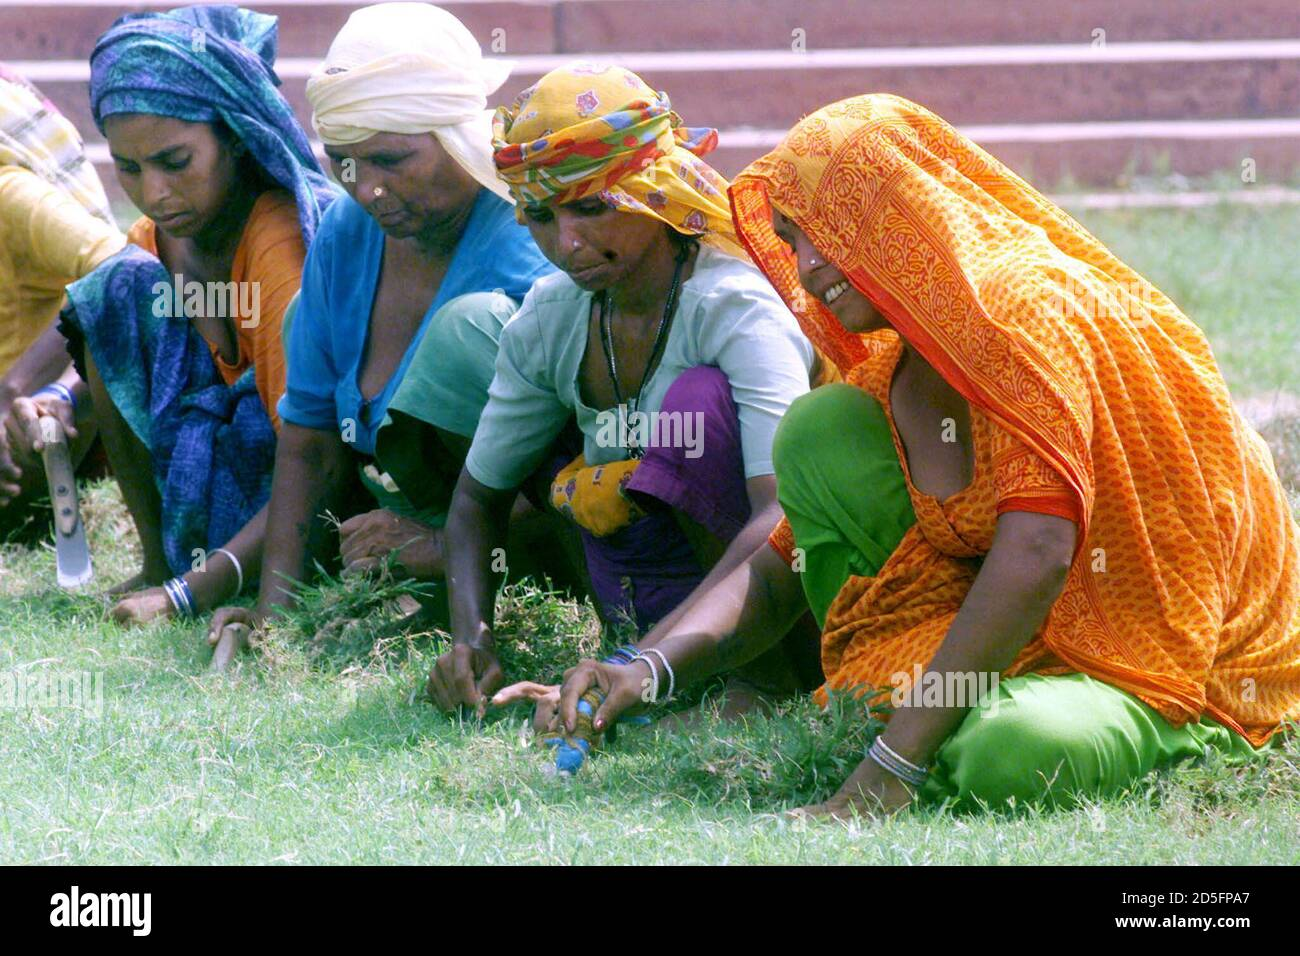 Menial Jobs India High Resolution Stock Photography And Images Alamy